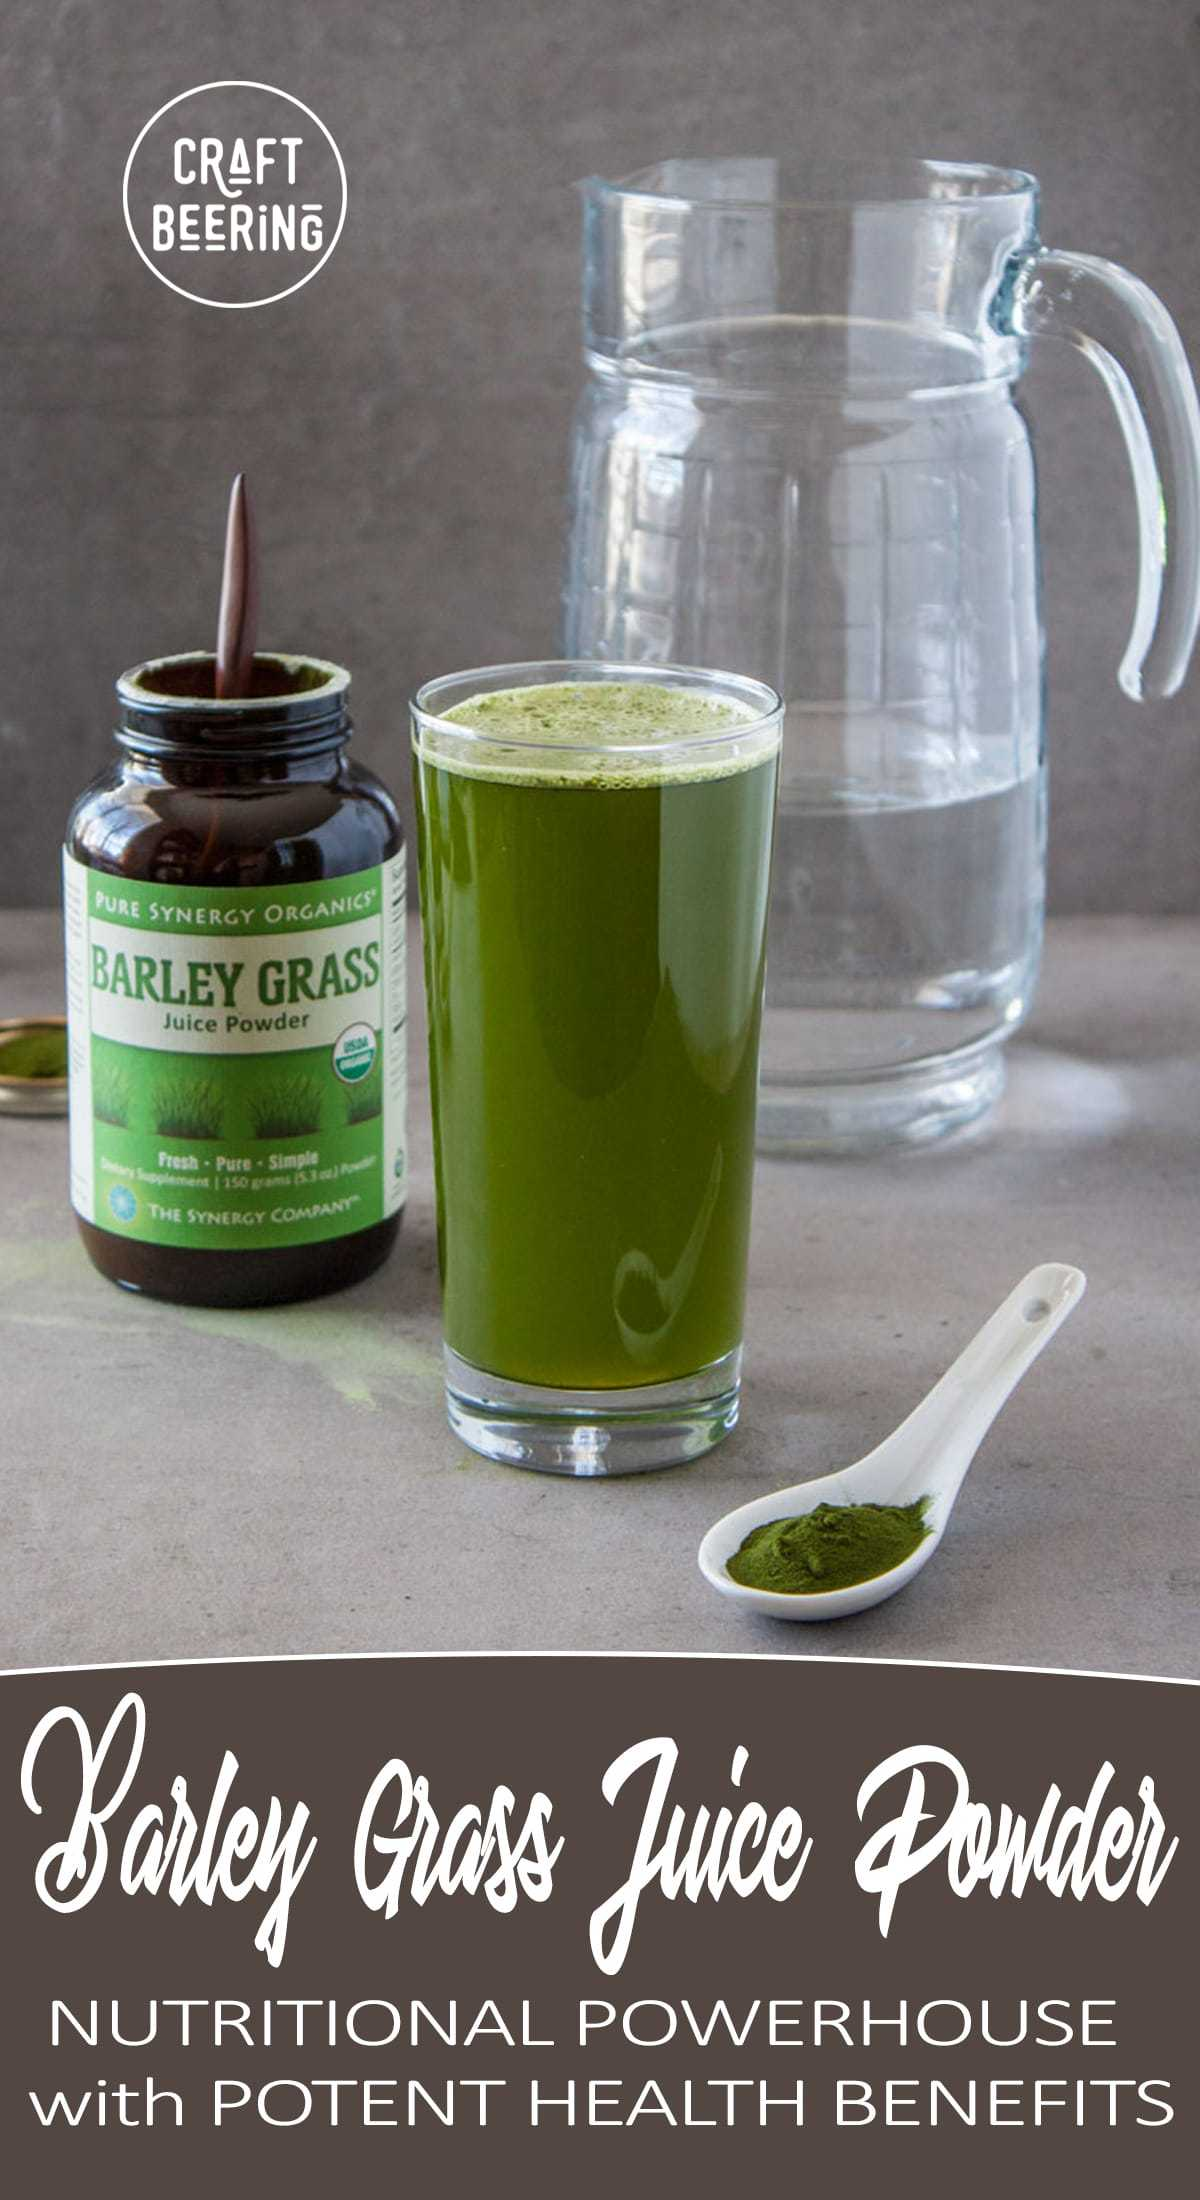 Barley Grass Juice Powder Health Benefits. A glassful of barley grass juice powder contains too many beneficial phytonutrients to list (= good for you:) #barleygrass #barleygrassjuicepowder #juicepowder